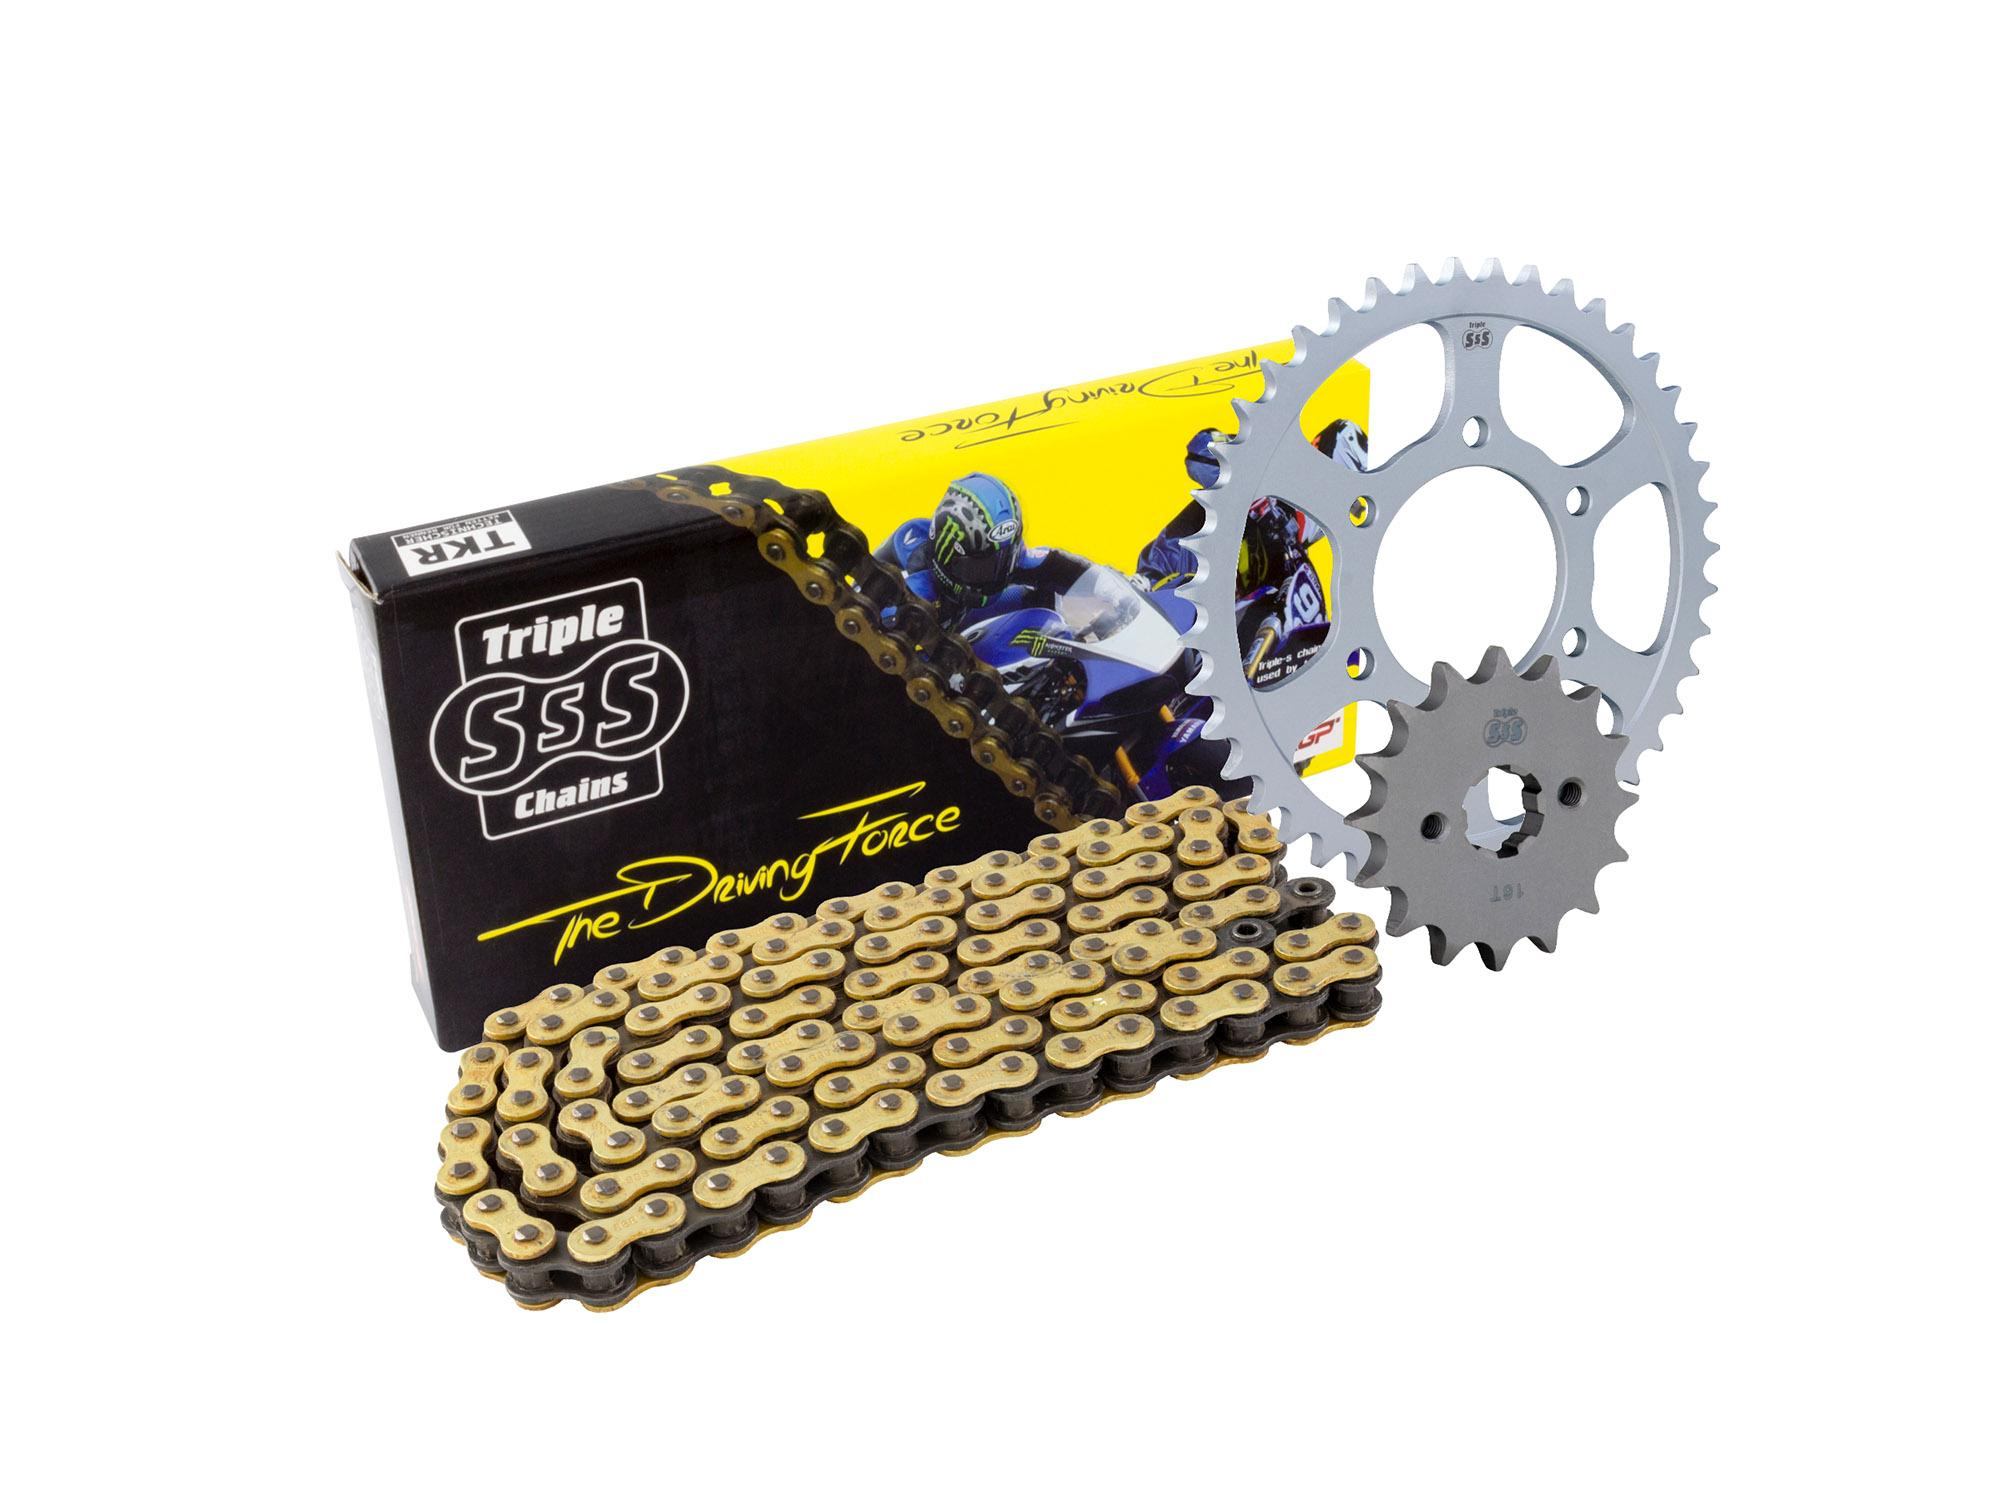 Honda XL700 V/VA Transalp 8/9/A 08-10 Chain & Sprocket Kit: 15T Front, 47T Rear, HD O-Ring Gold Chain 525H 118Link